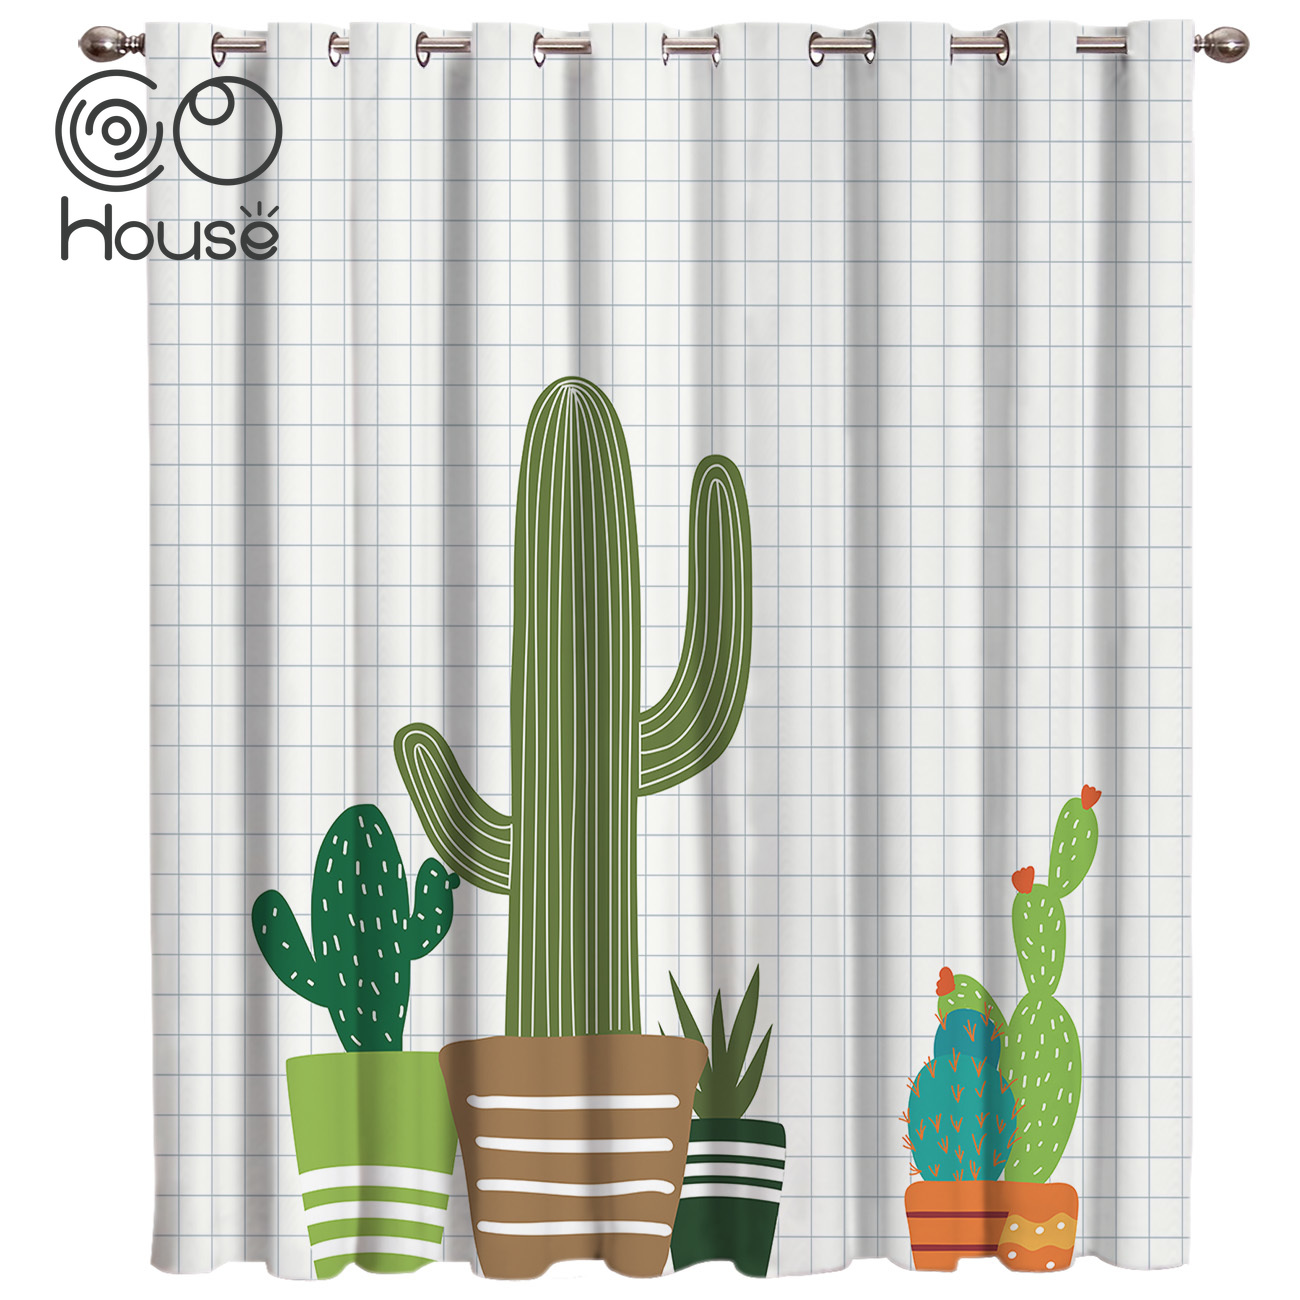 CoCoHouse Nordic Cartoon Geometic Living Room Bedroom Fabric Kids Curtain Panels With Grommets Window Treatment Valances Window